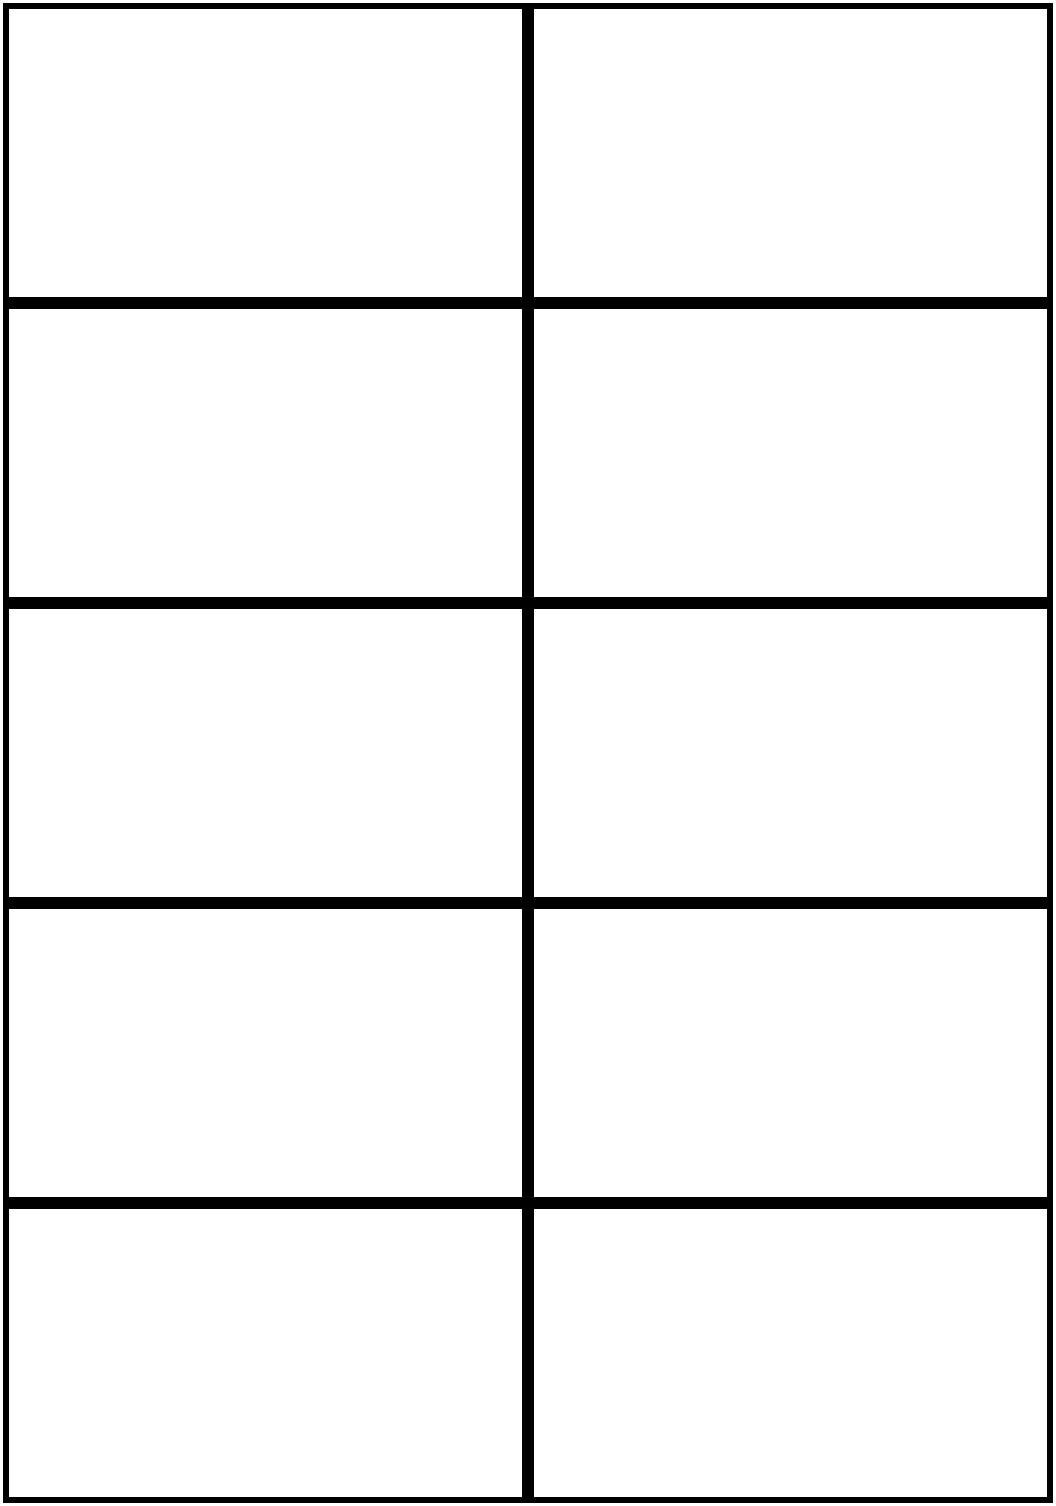 Image Result For Flashcards Template Word | Worksheets | Free - Free Printable Business Card Templates